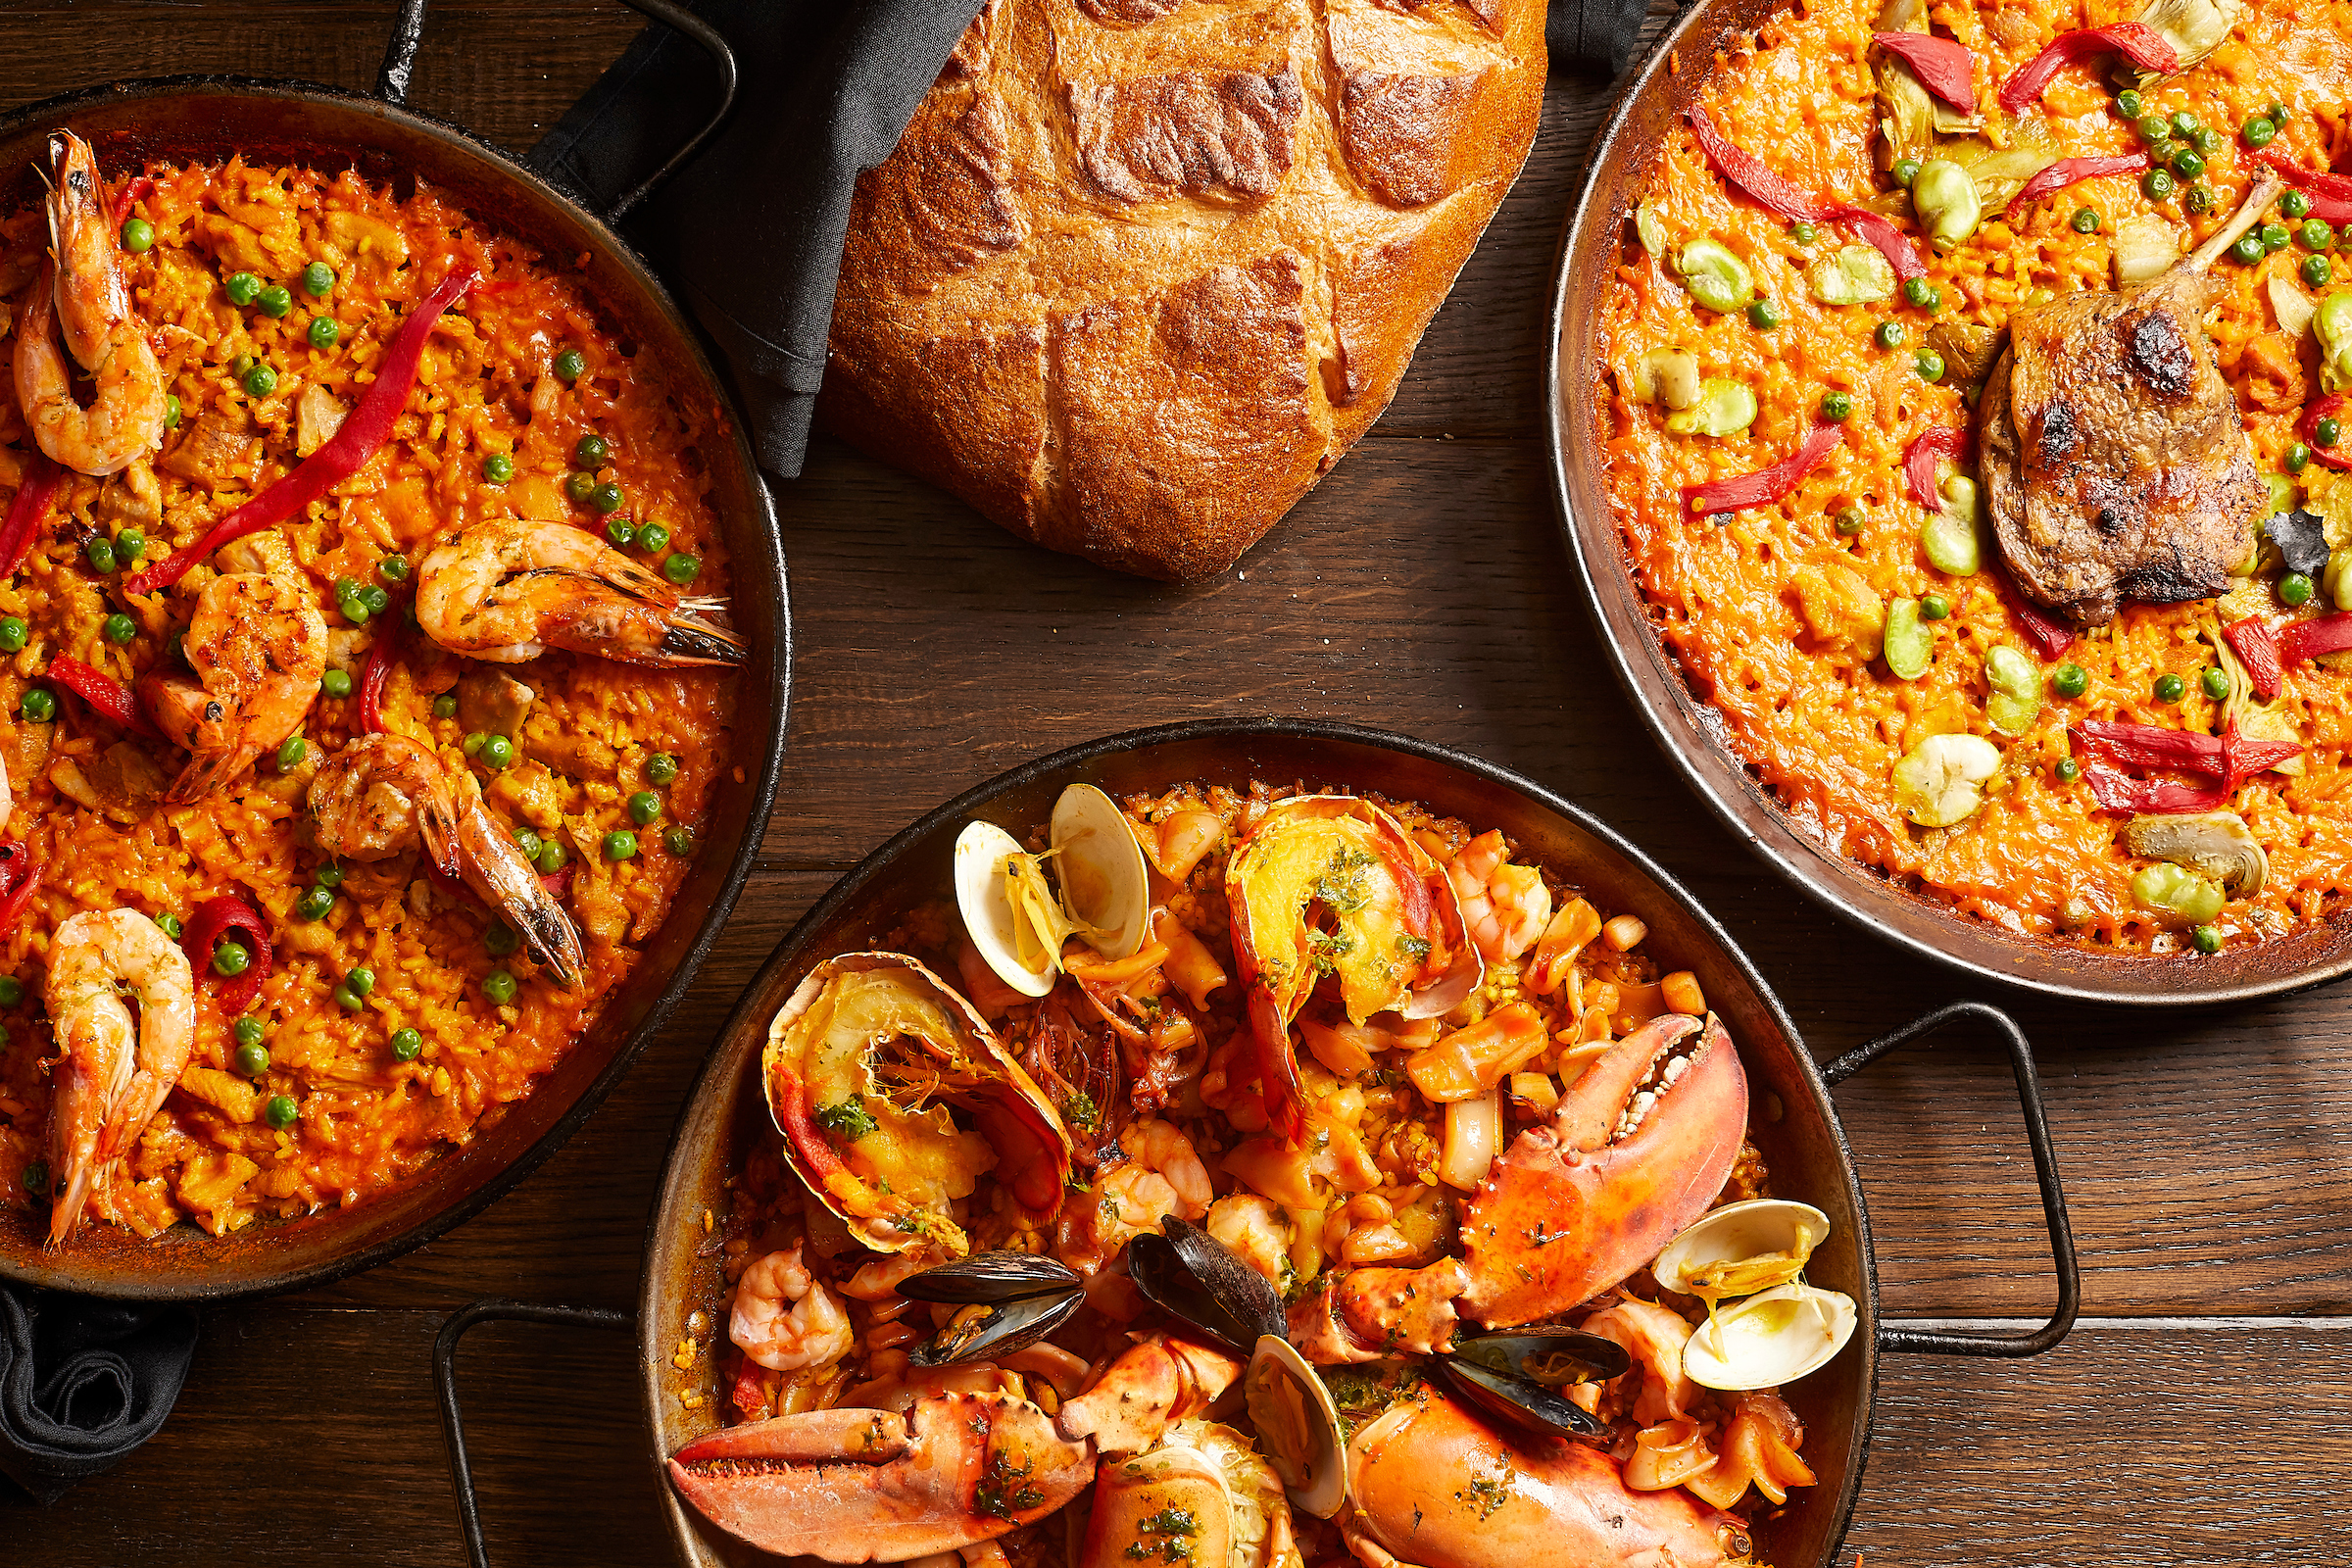 Paellas dishes at Bodegon serve two to three people.